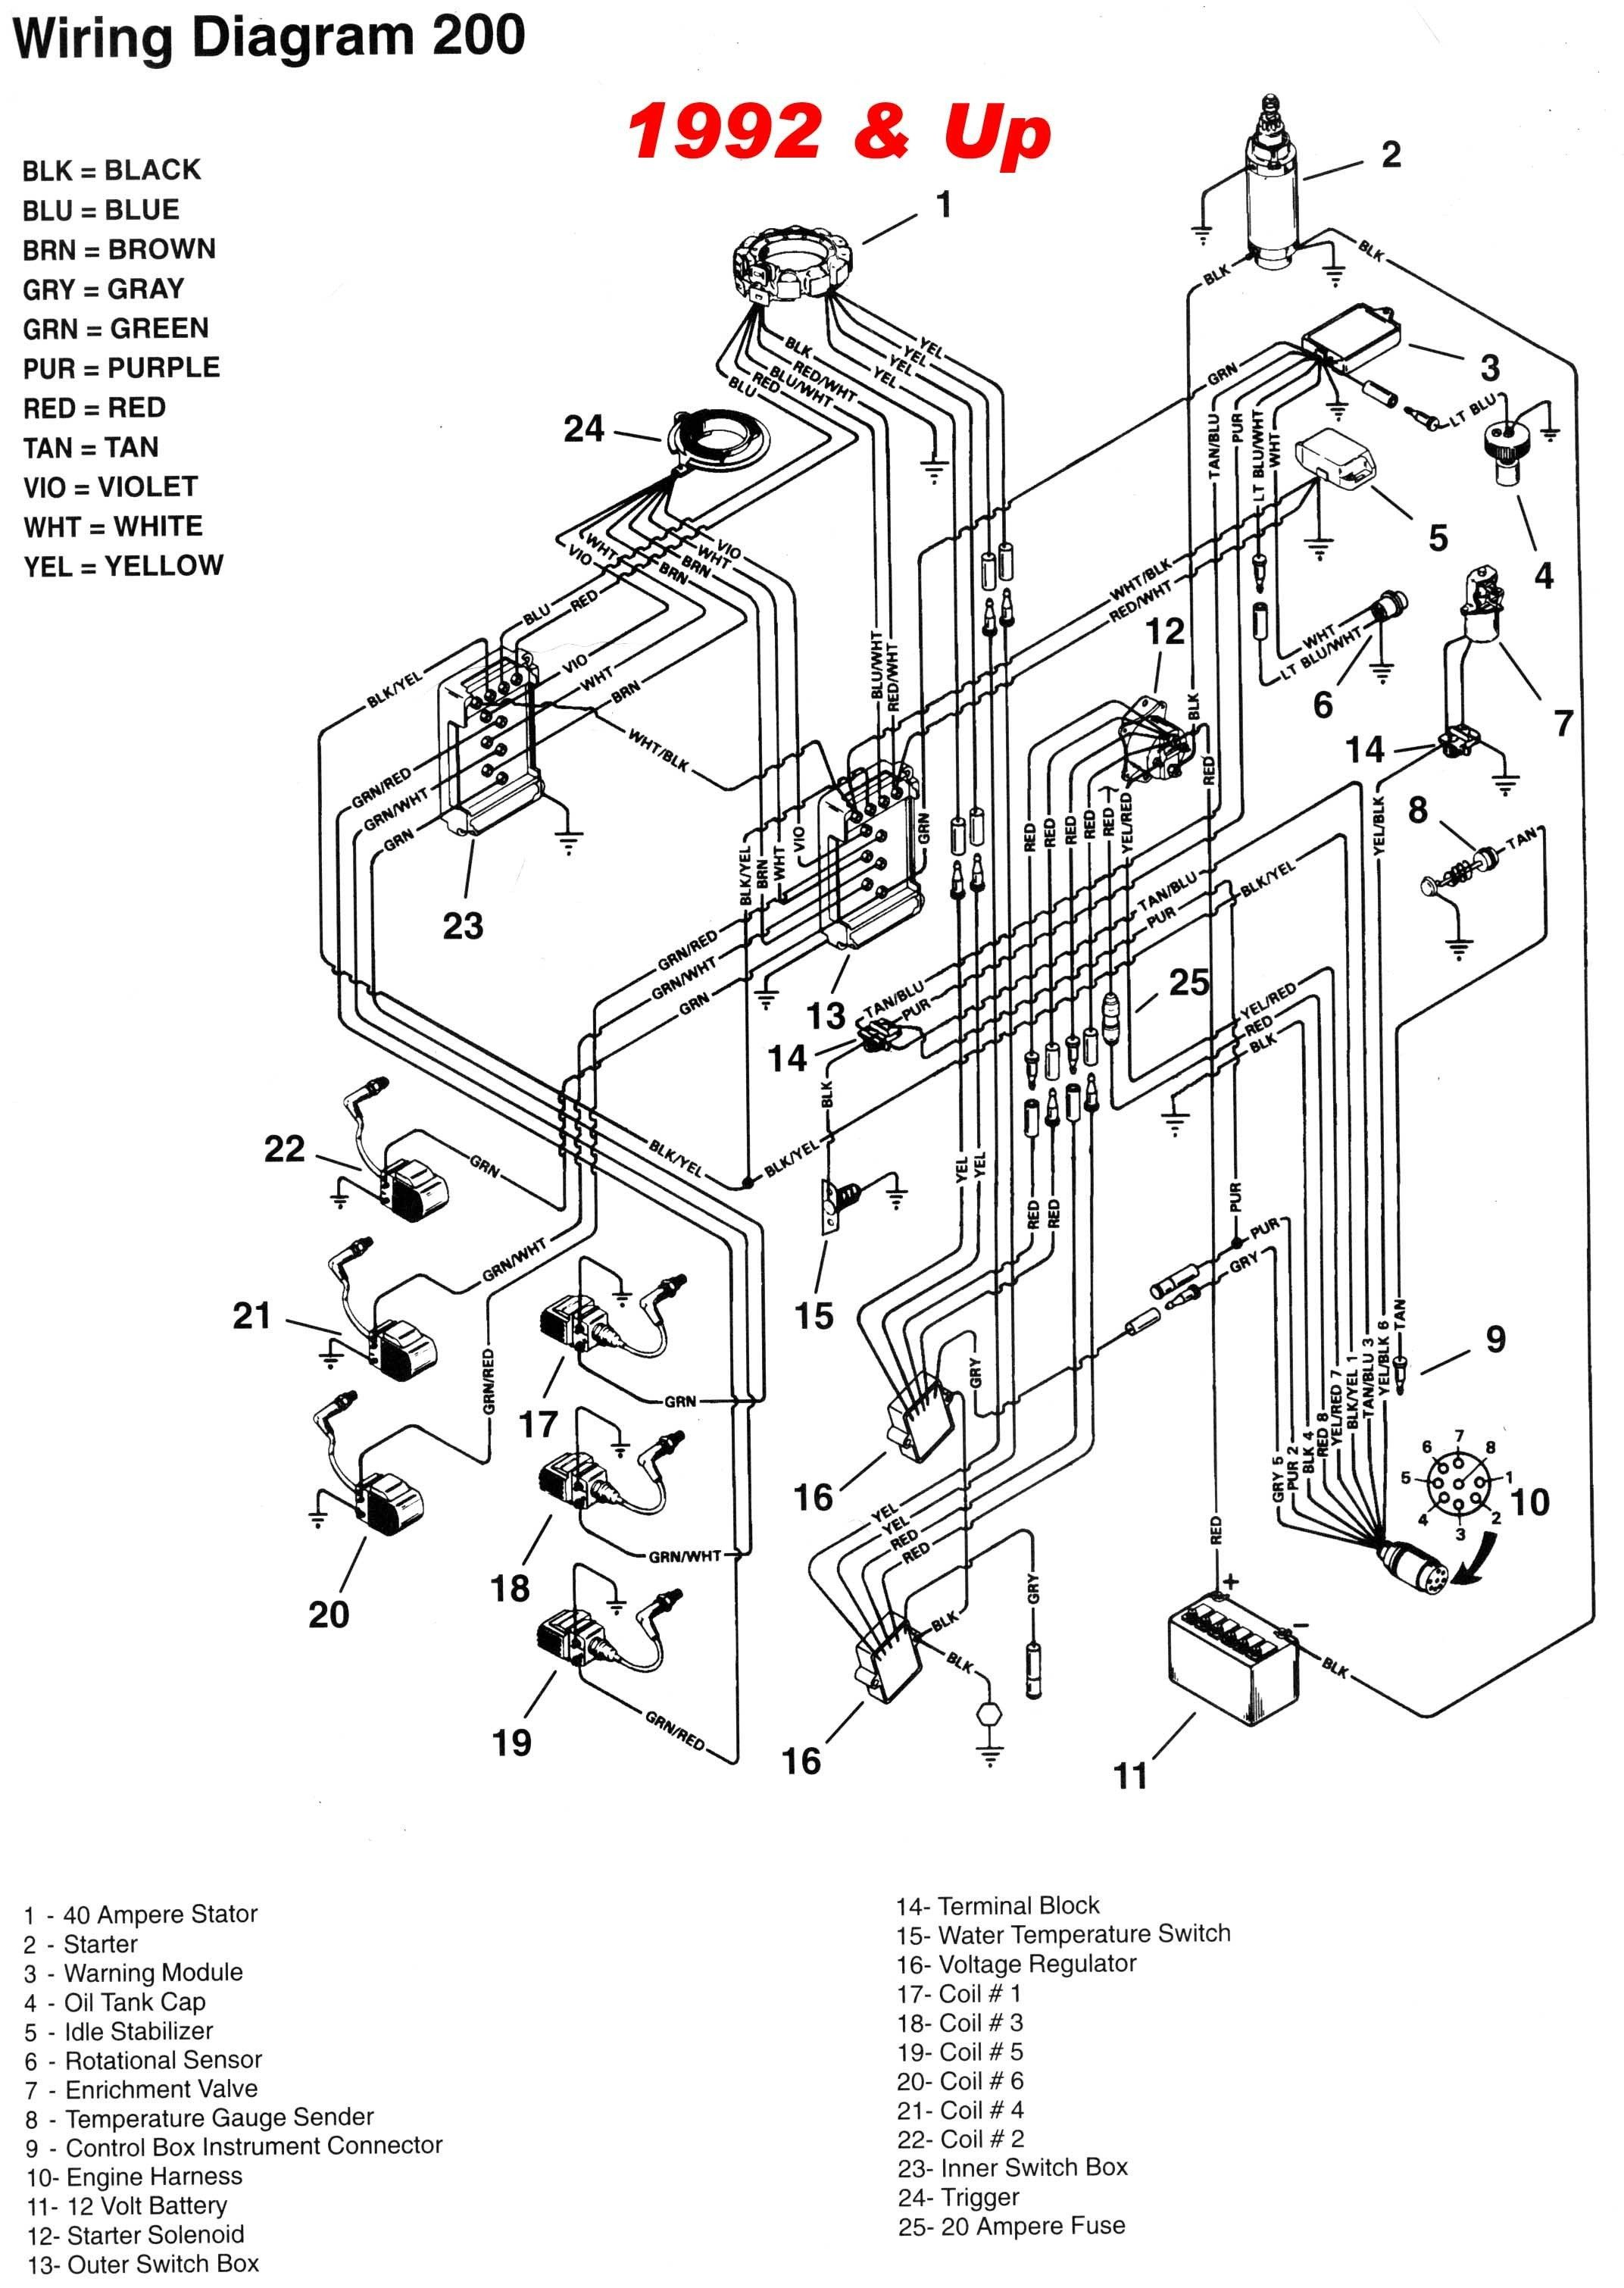 99 Civic Ignition Wiring Diagram Third Level Wire For Camry Diagrams Instructions Ripping